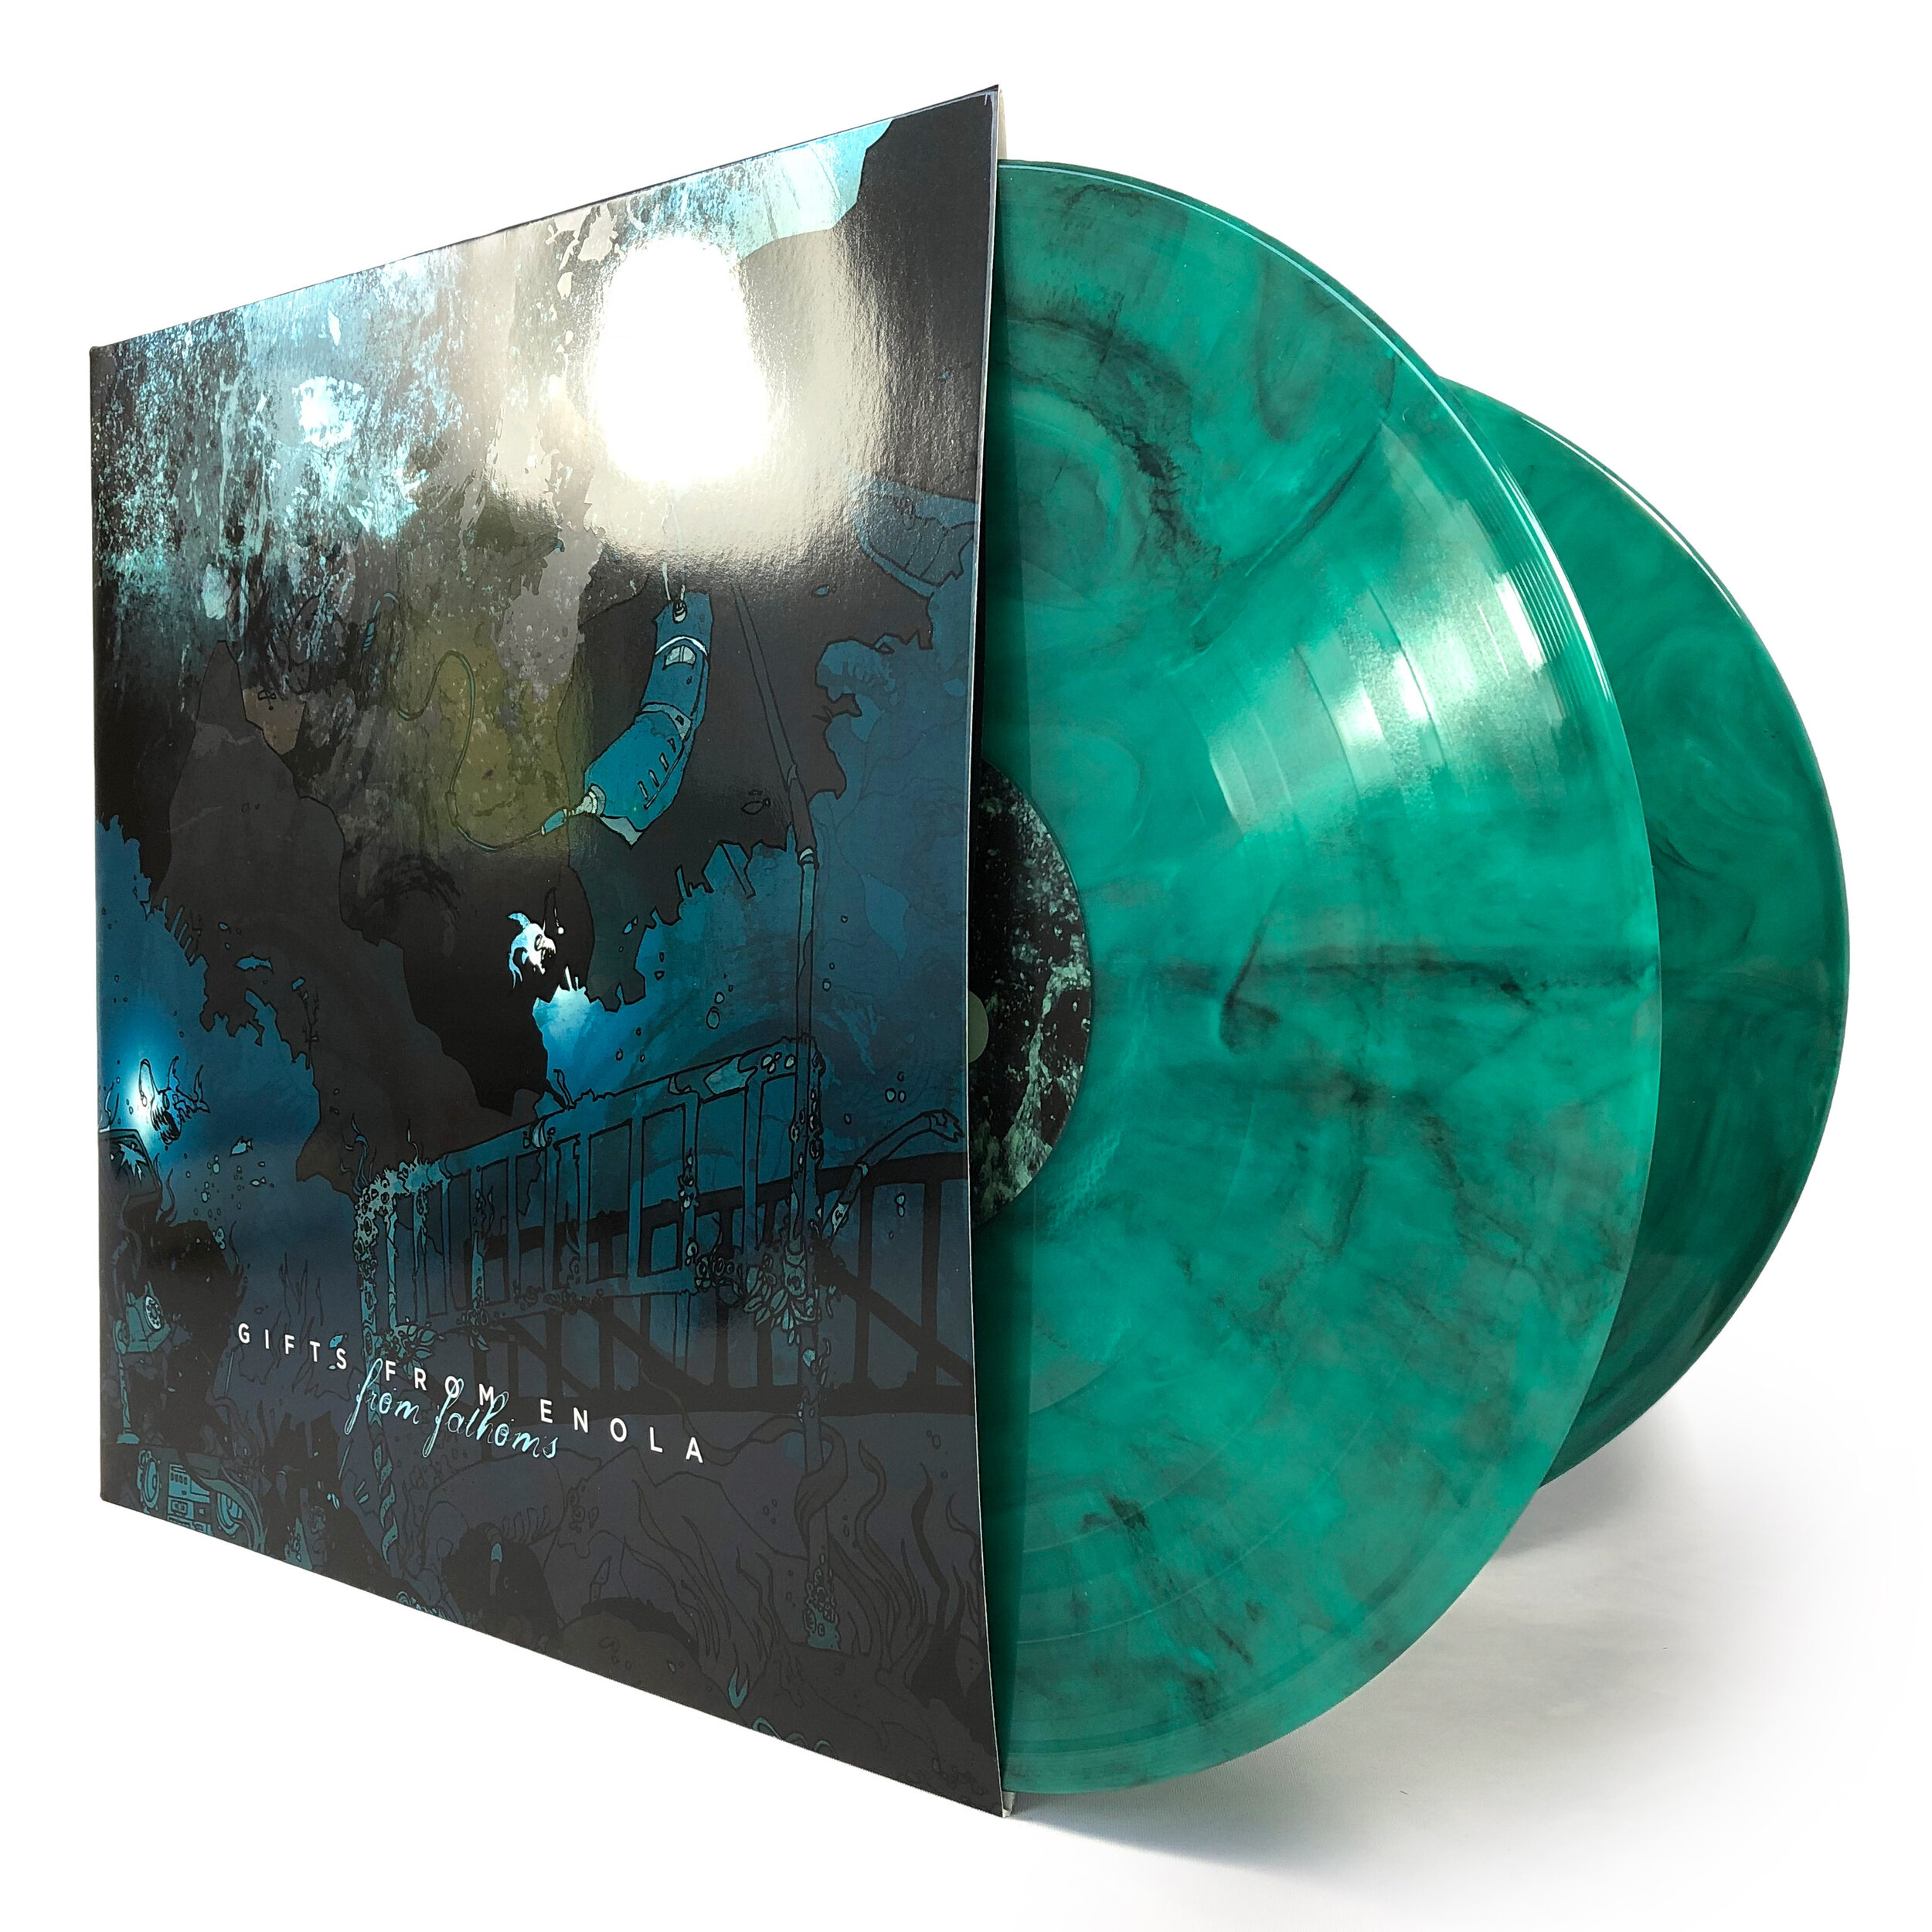 Gifts From Enola • From Fathoms - Comes on 180g colored vinyl (green with black smoke) in gatefold cover with spot UV